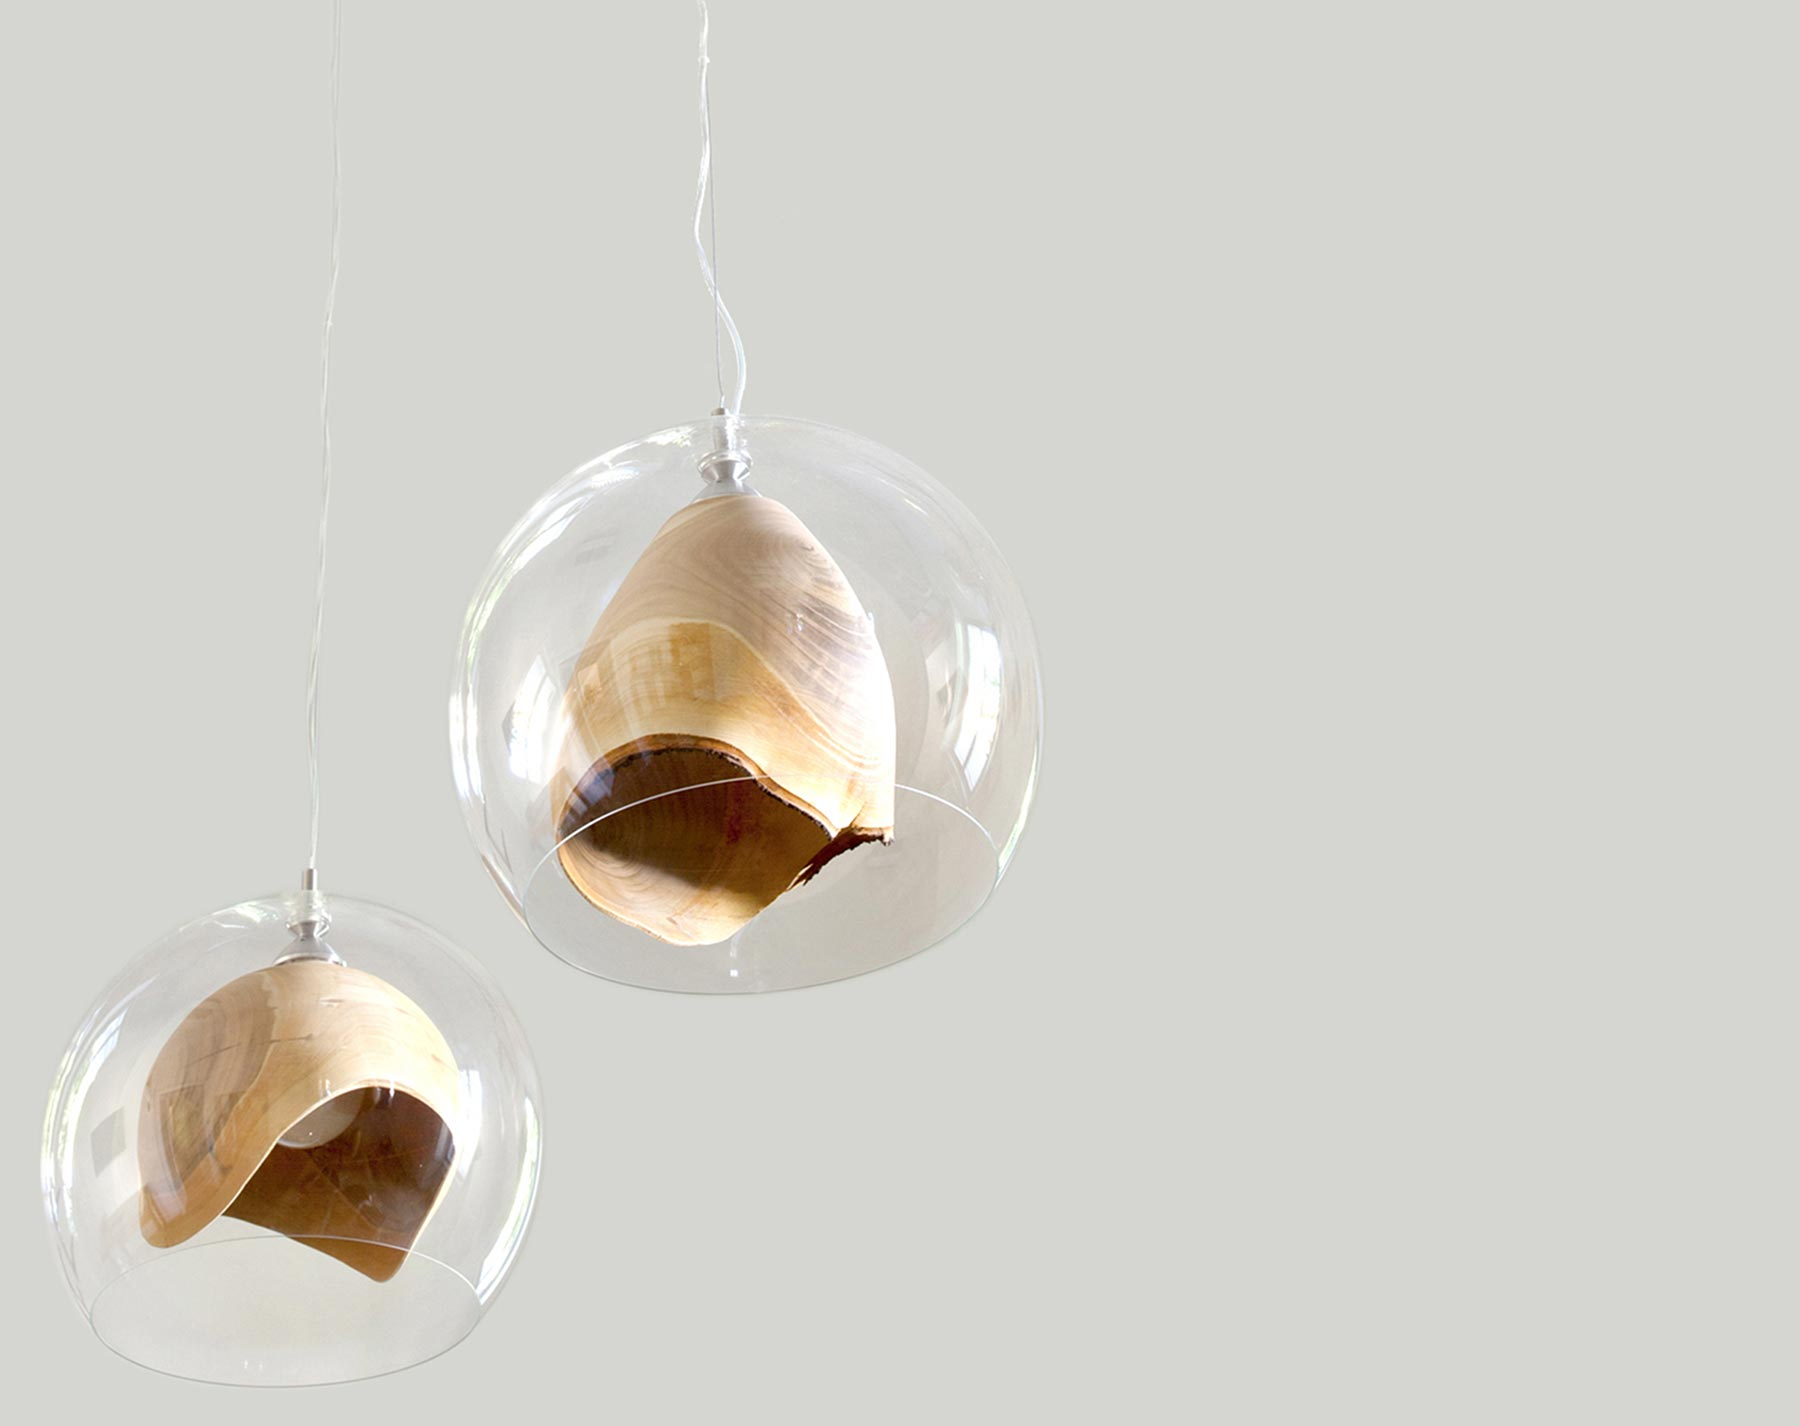 teka-lamp-of-layered-wood-and-glass-3